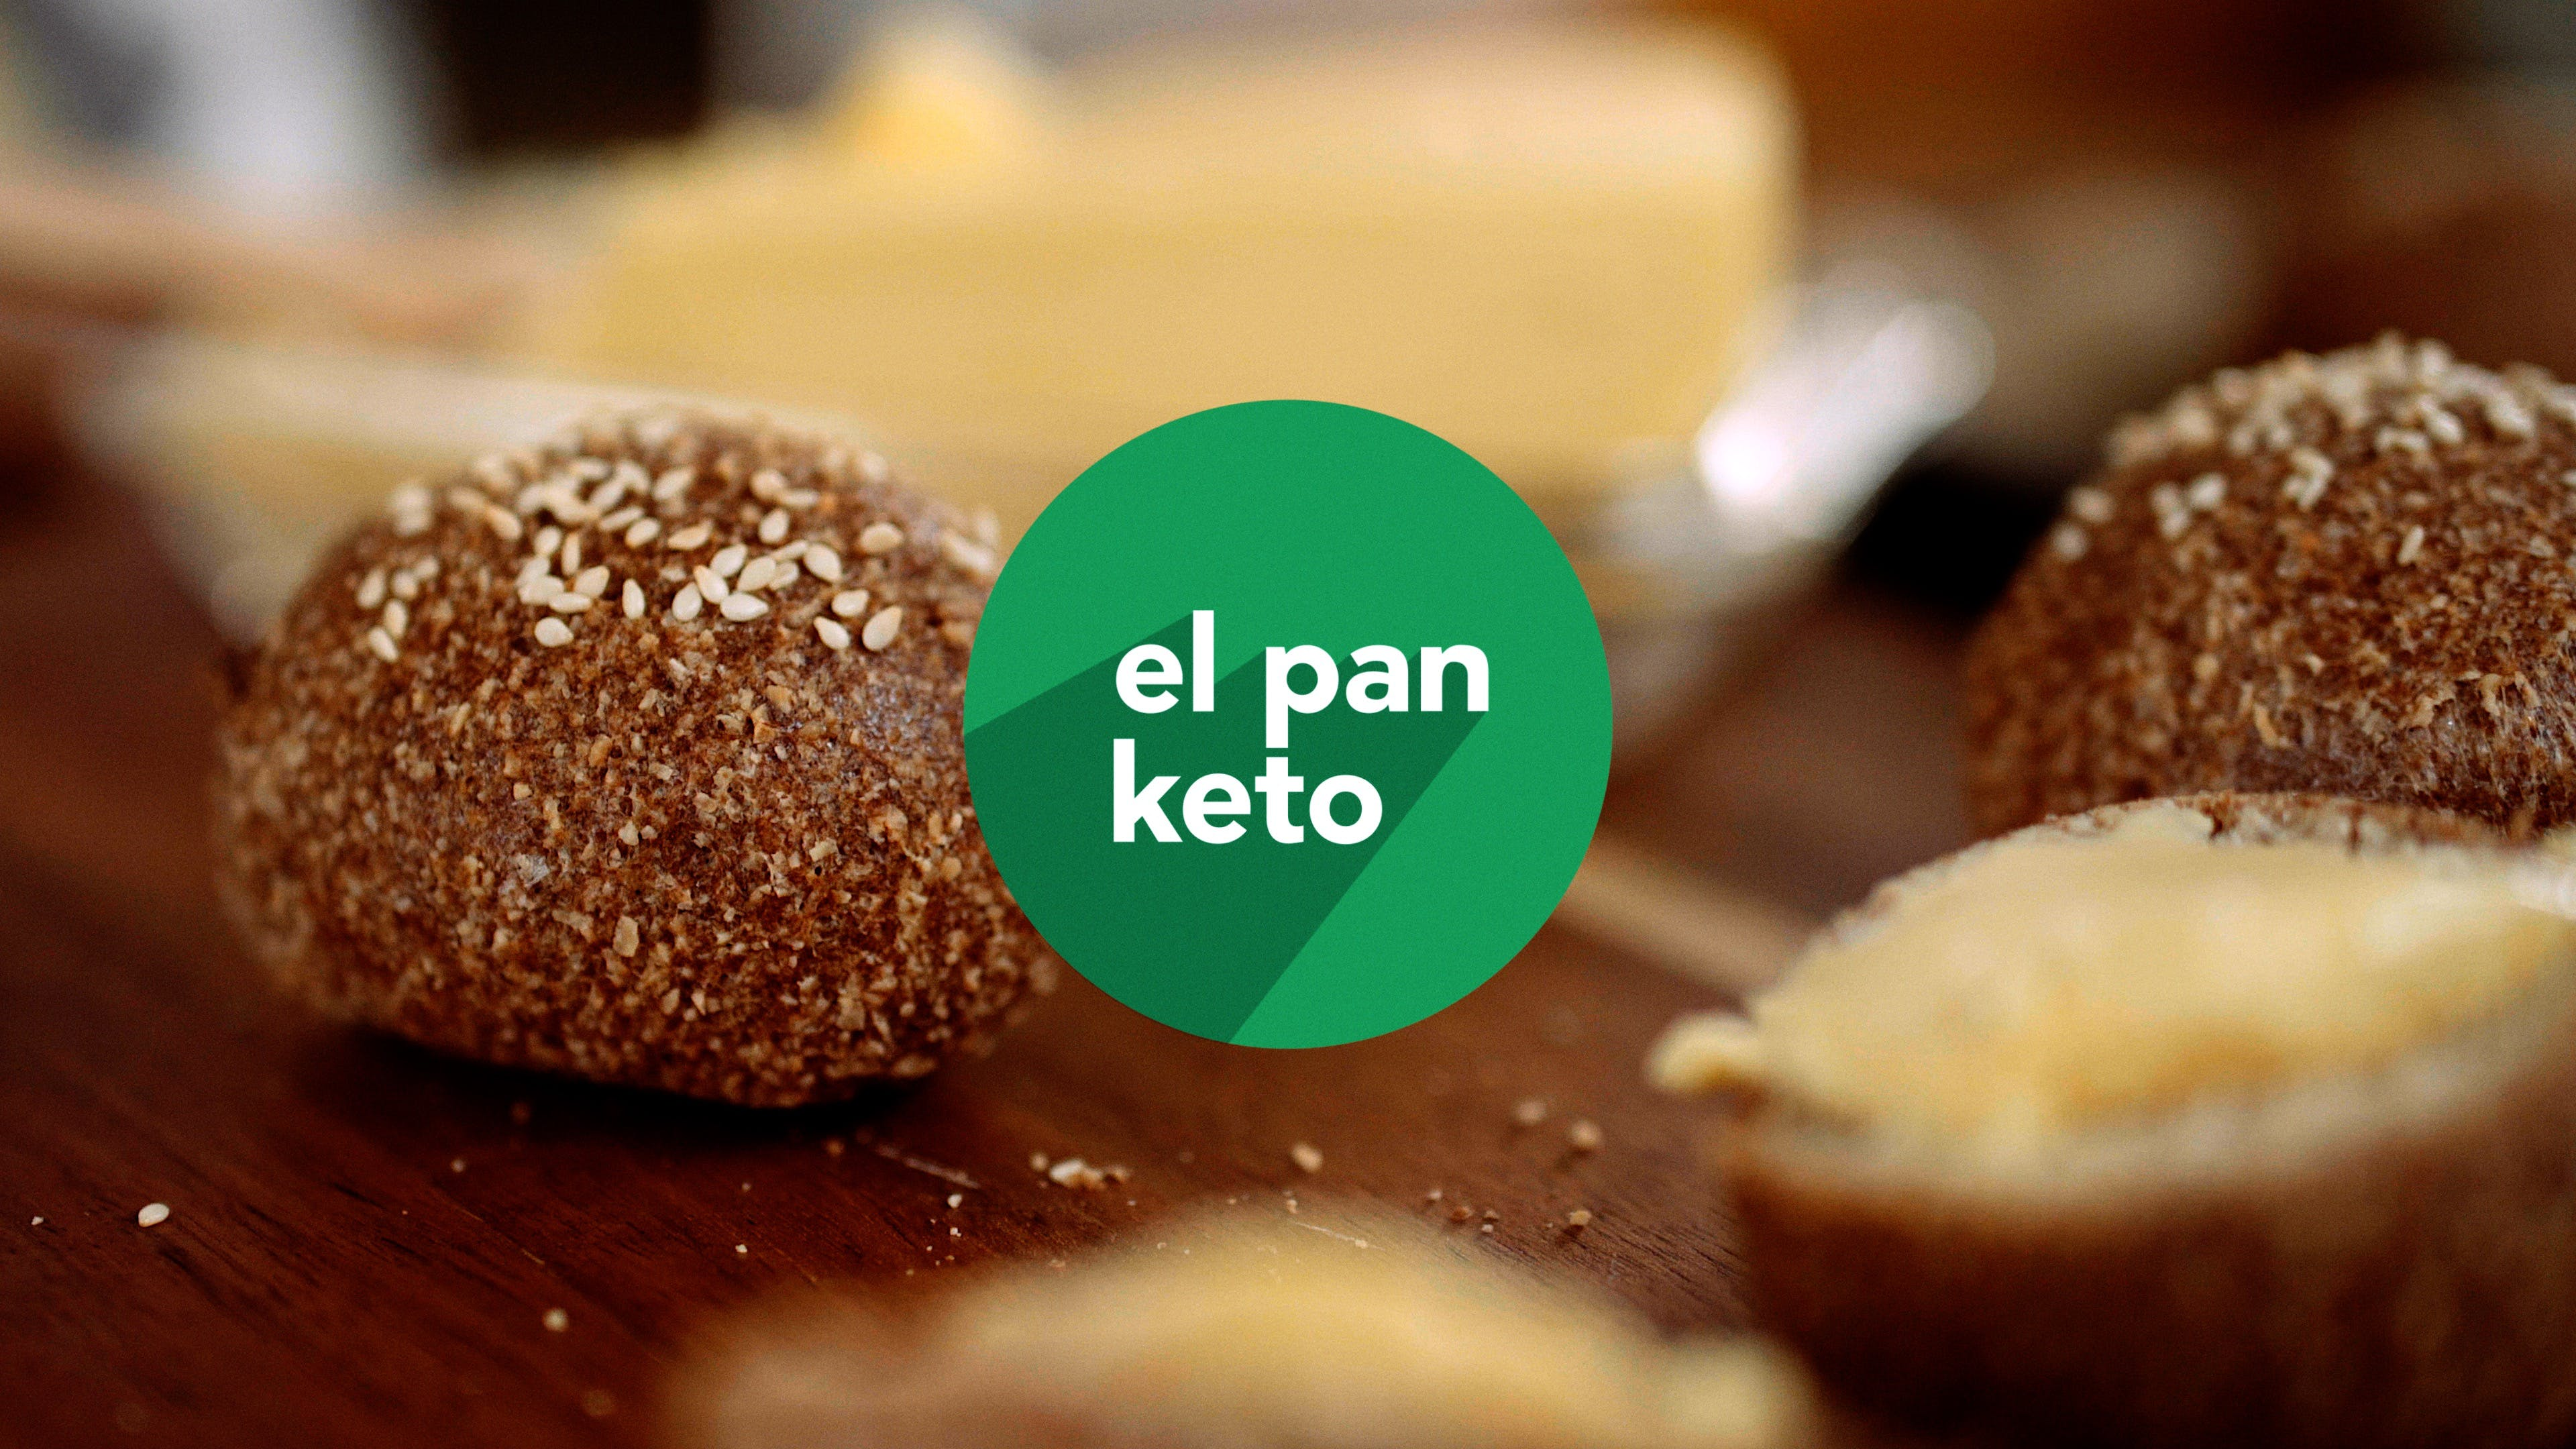 Primer video publicado<br> en Diet Doctor español: El pan keto